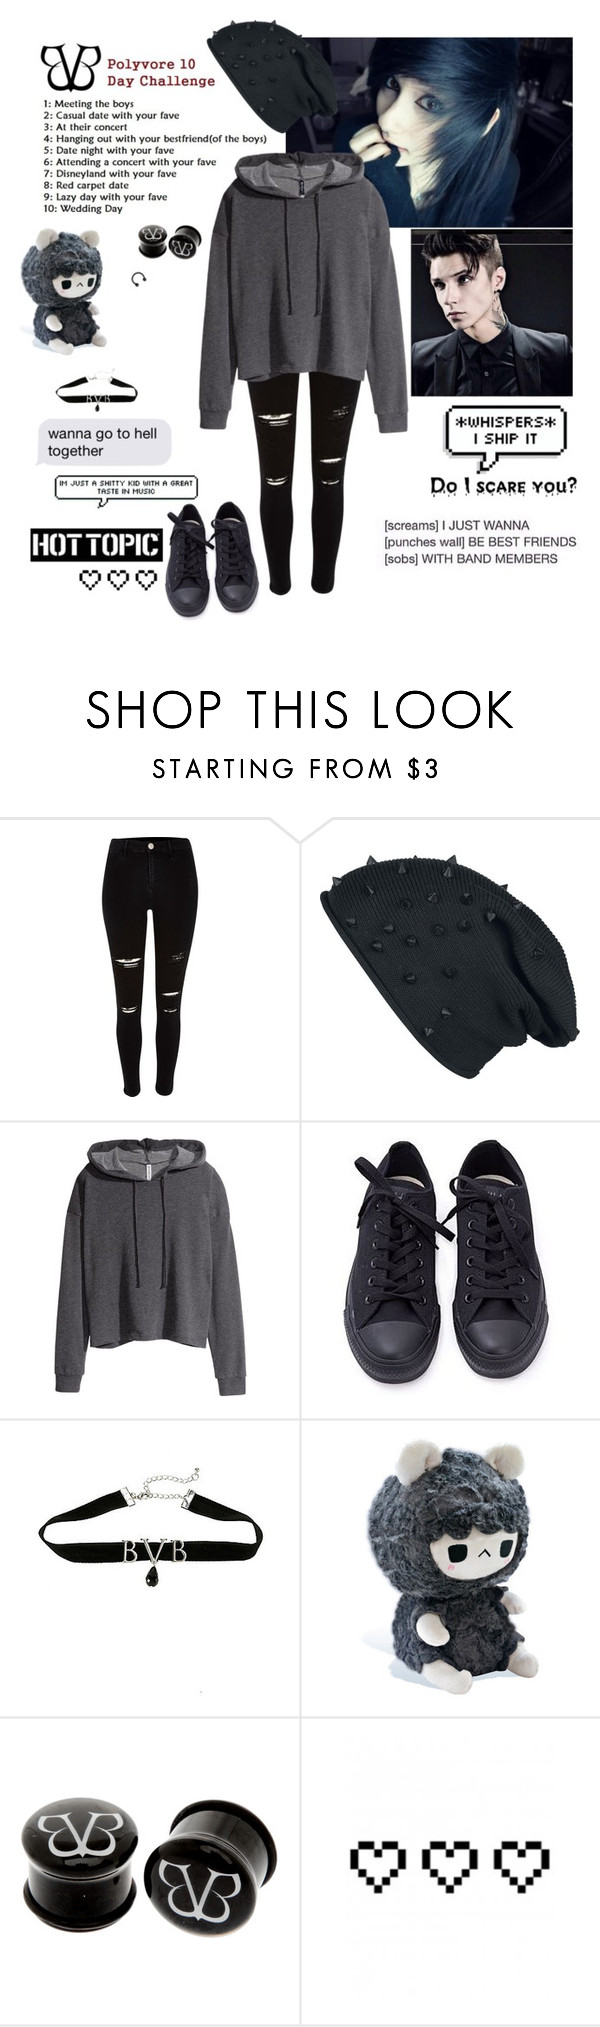 """BVB 2"" by emokittyyy ❤ liked on Polyvore featuring H&M, Converse and Retrò"